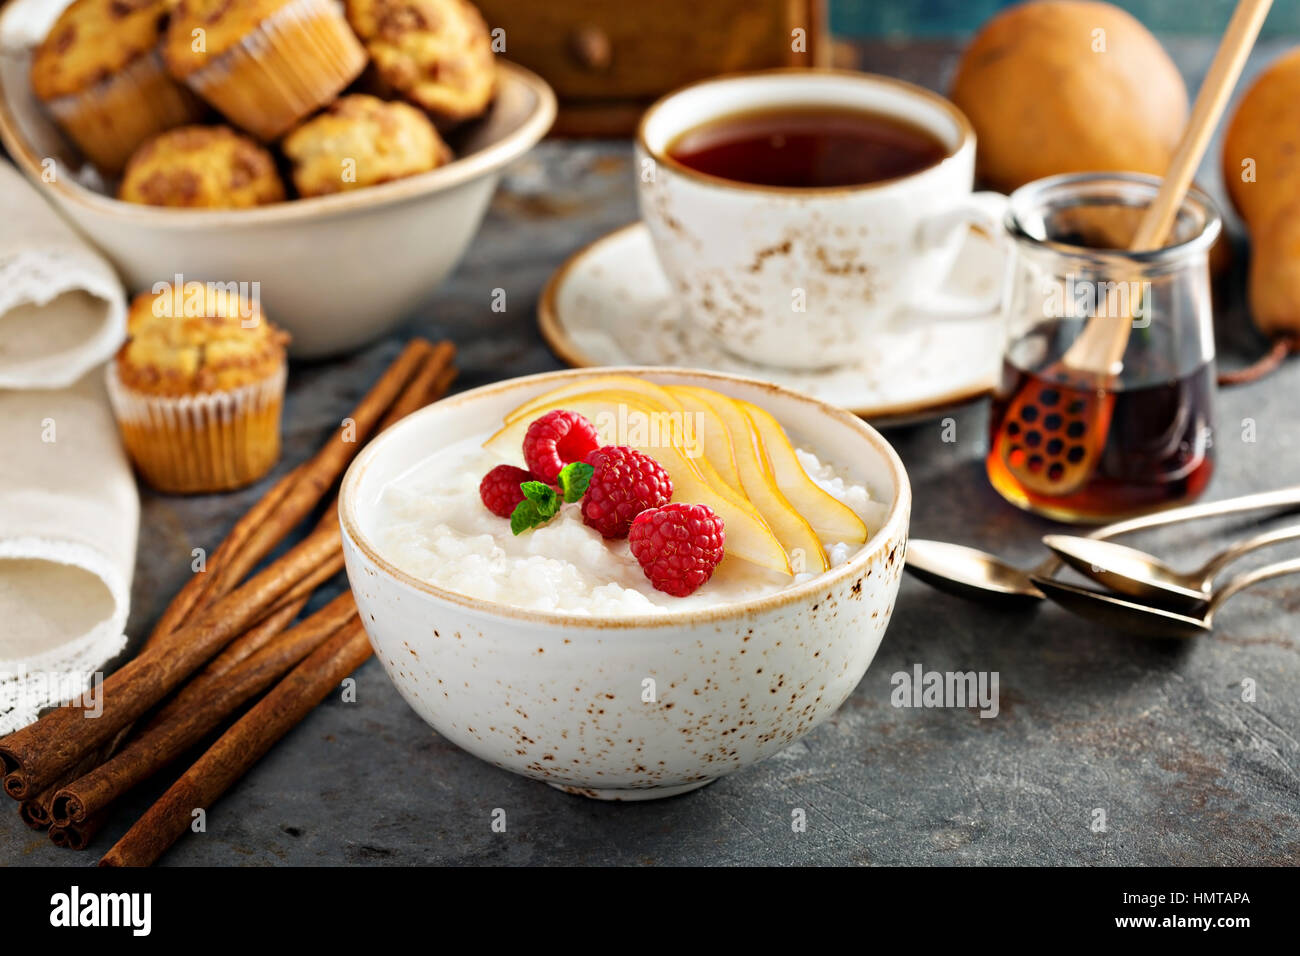 Rice pudding with raspberries and sliced pears for breakfast - Stock Image